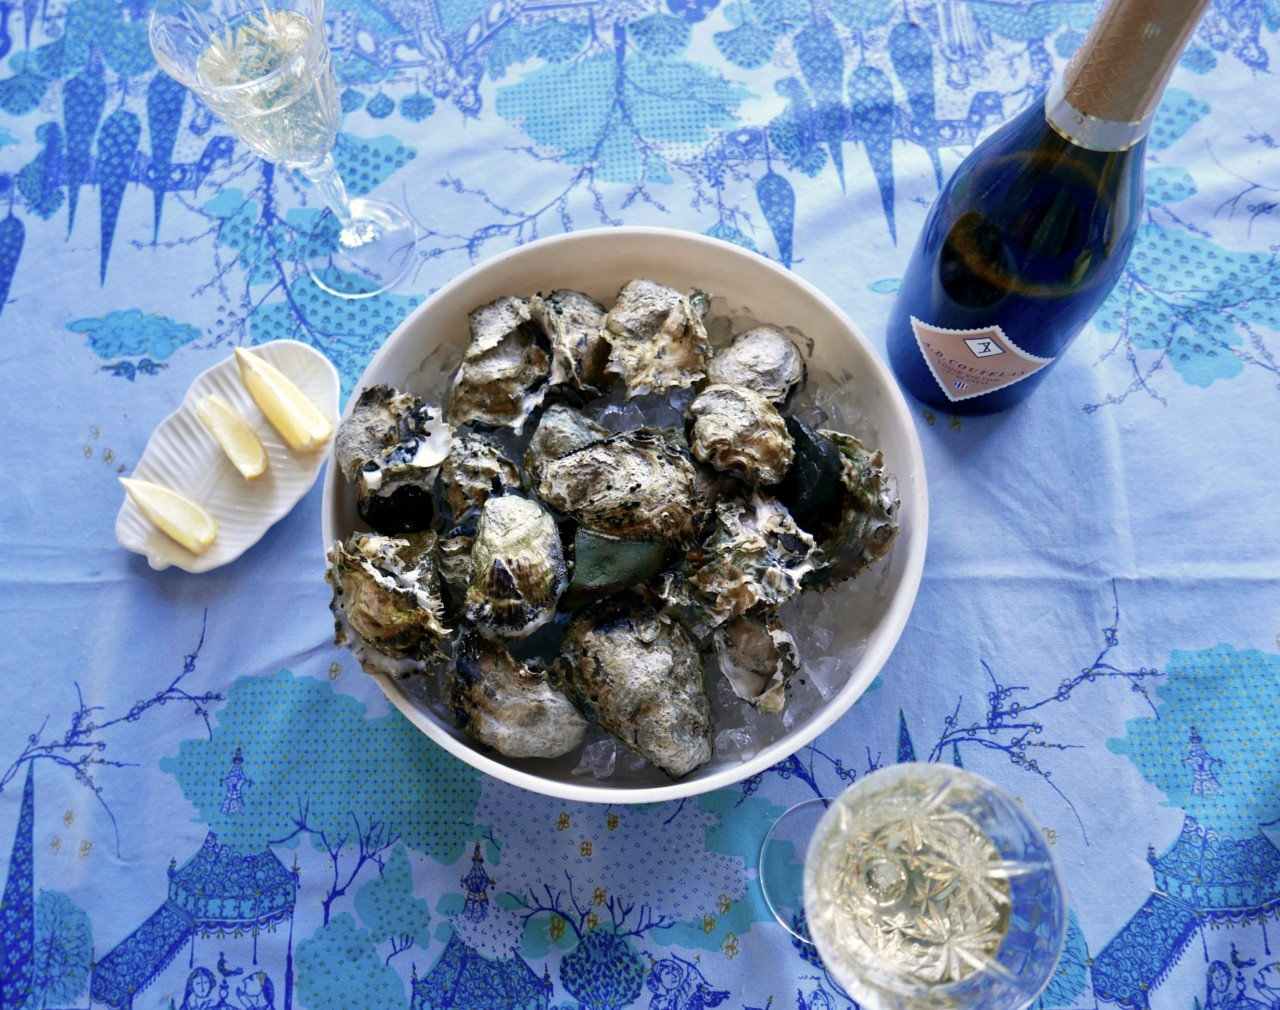 oysters-lemon-wiinblad-duk-sitron-champagne-green-house